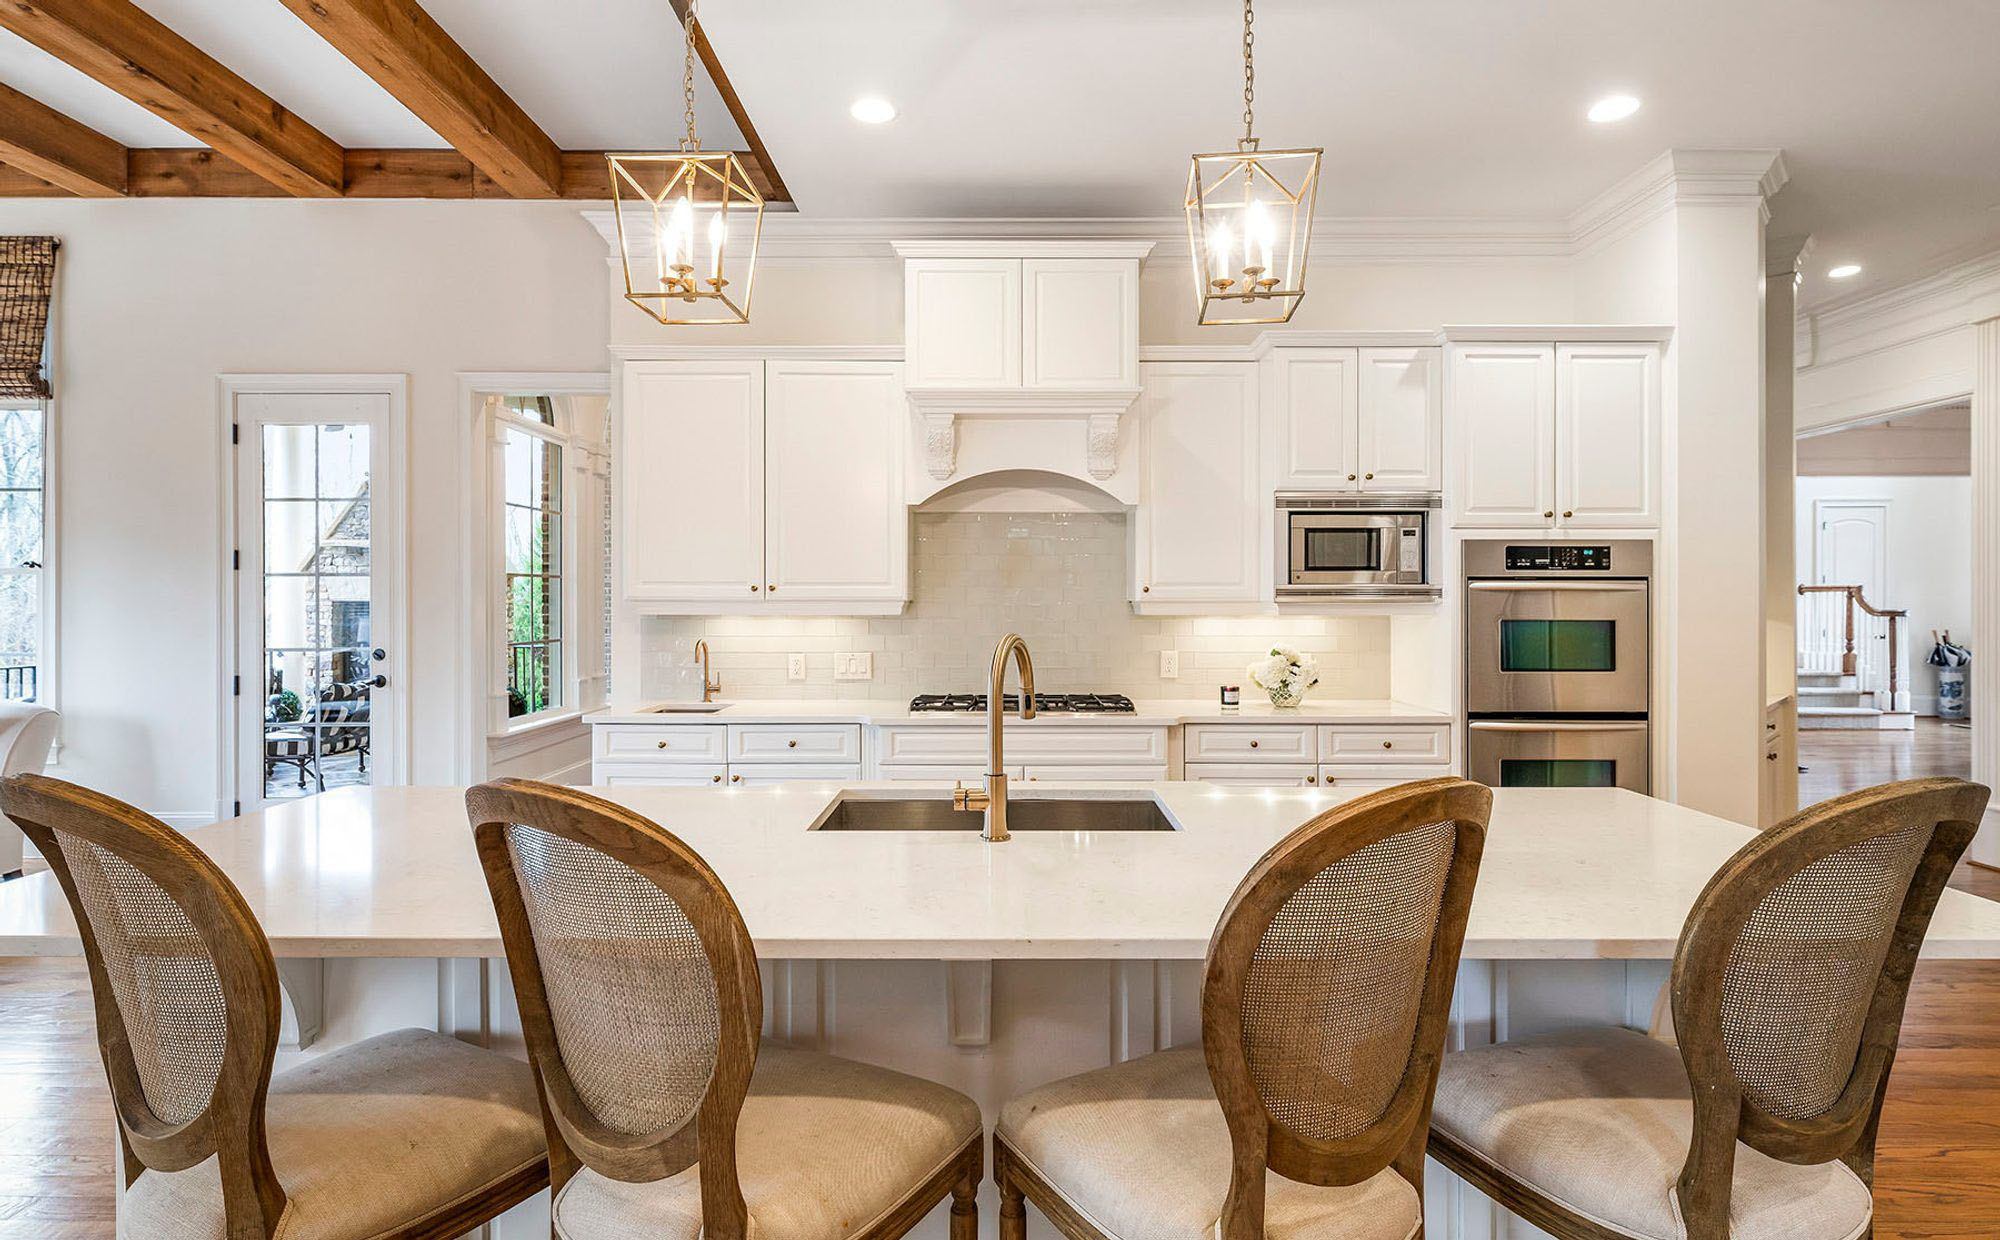 Beautiful white kitchen cabinets with a matching white island, white walls and white glass backsplash.